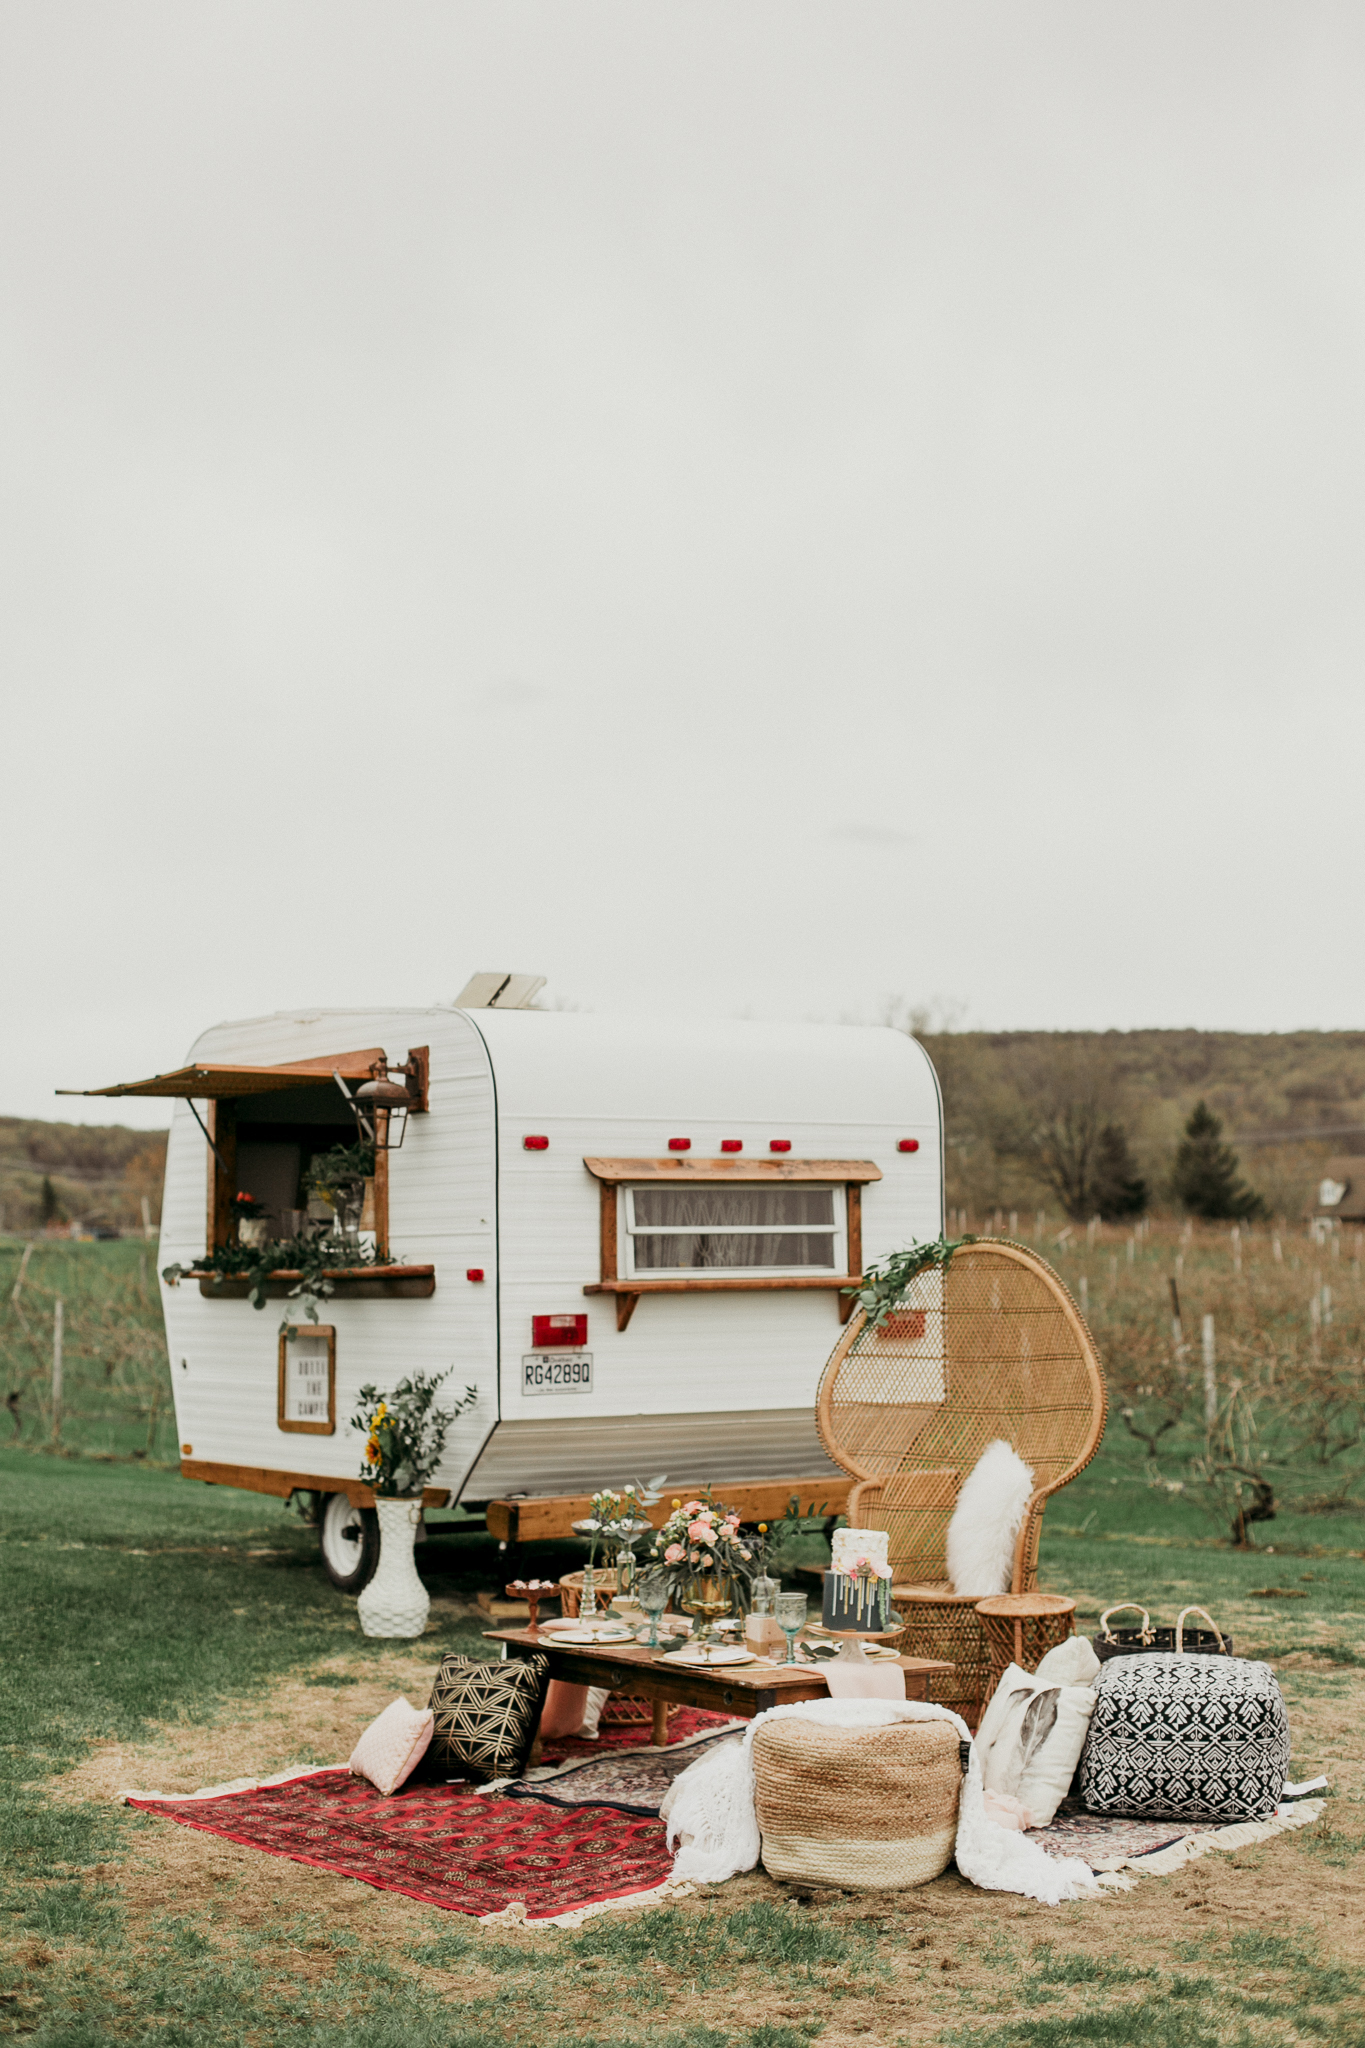 8 Glamping Retreats That Are Perfect for Bachelorette Parties